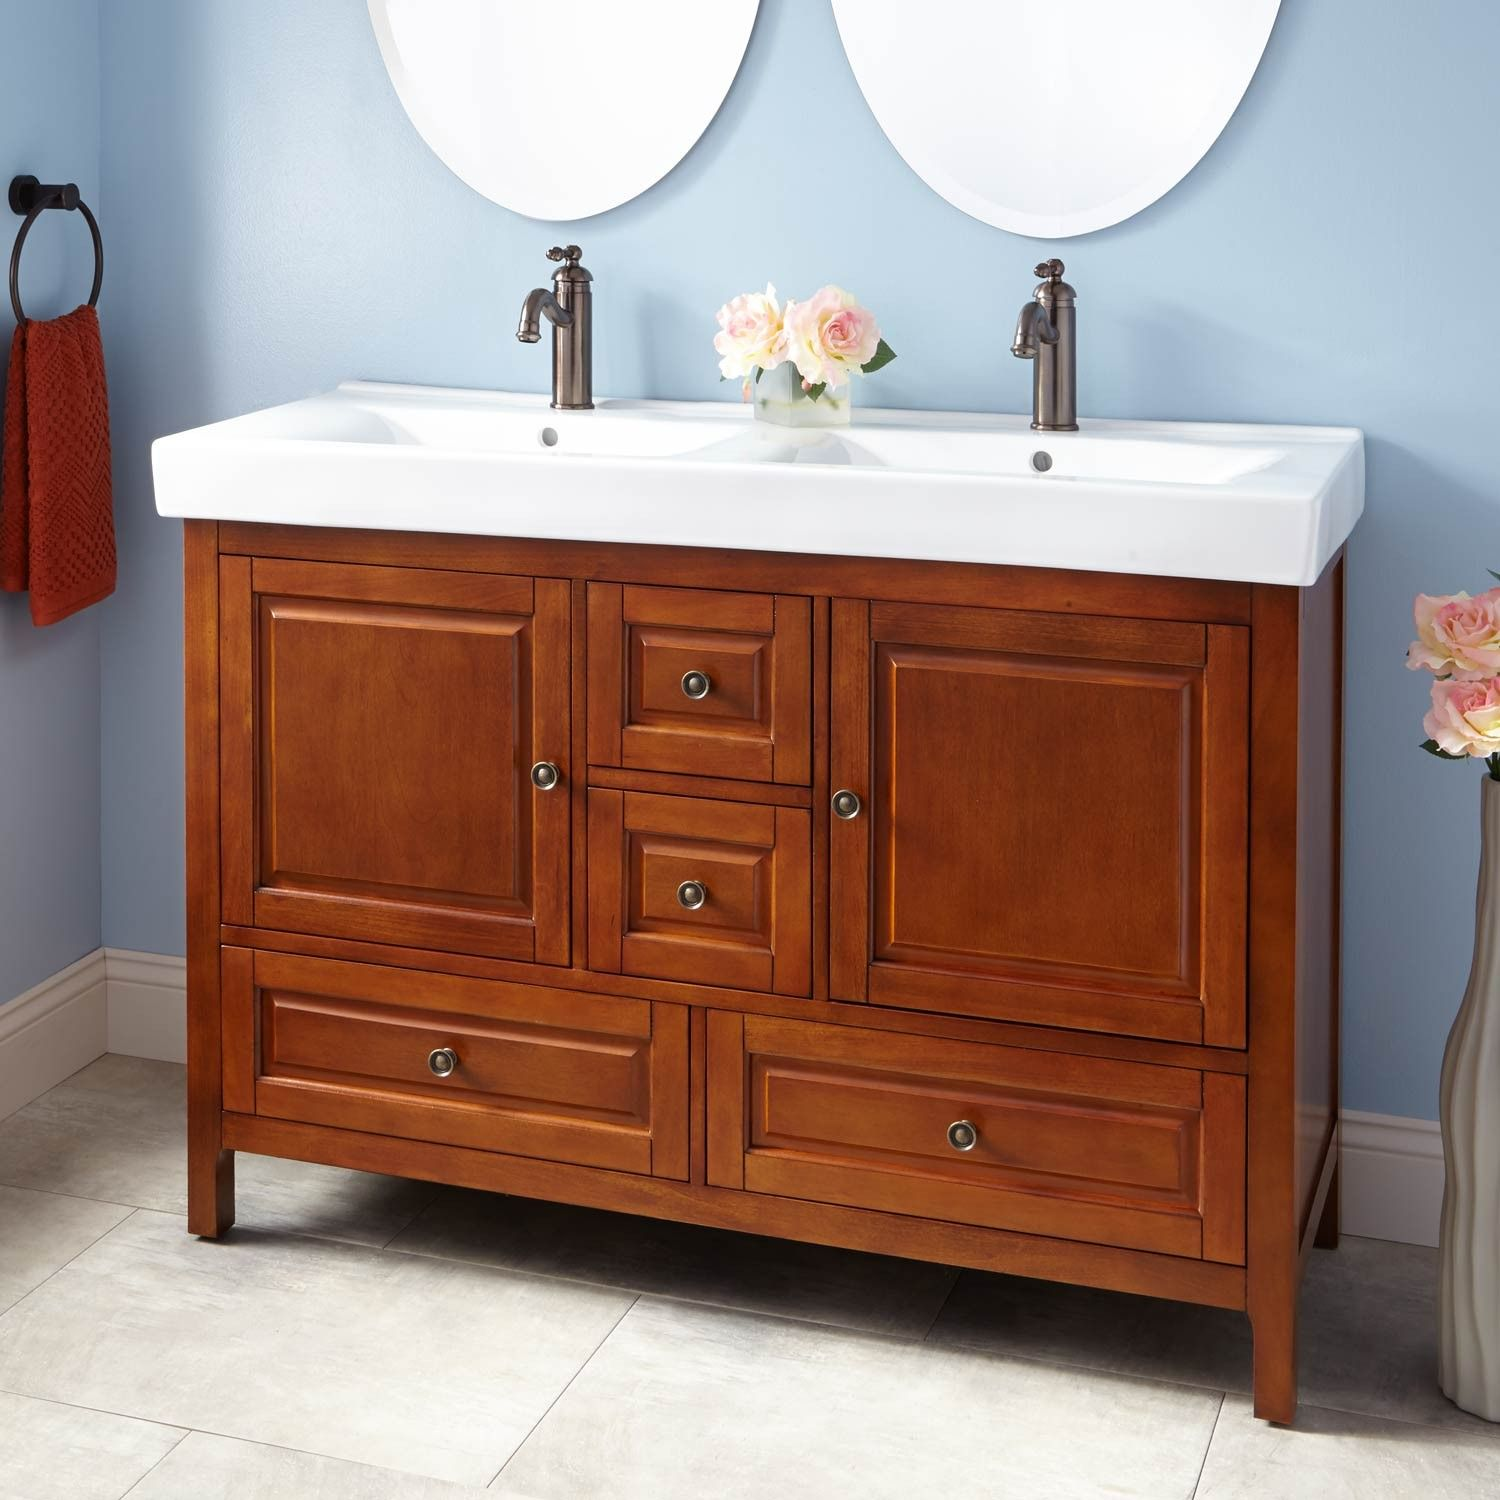 Oxford 48 Double Bathroom Vanity Set With Mirror With Images